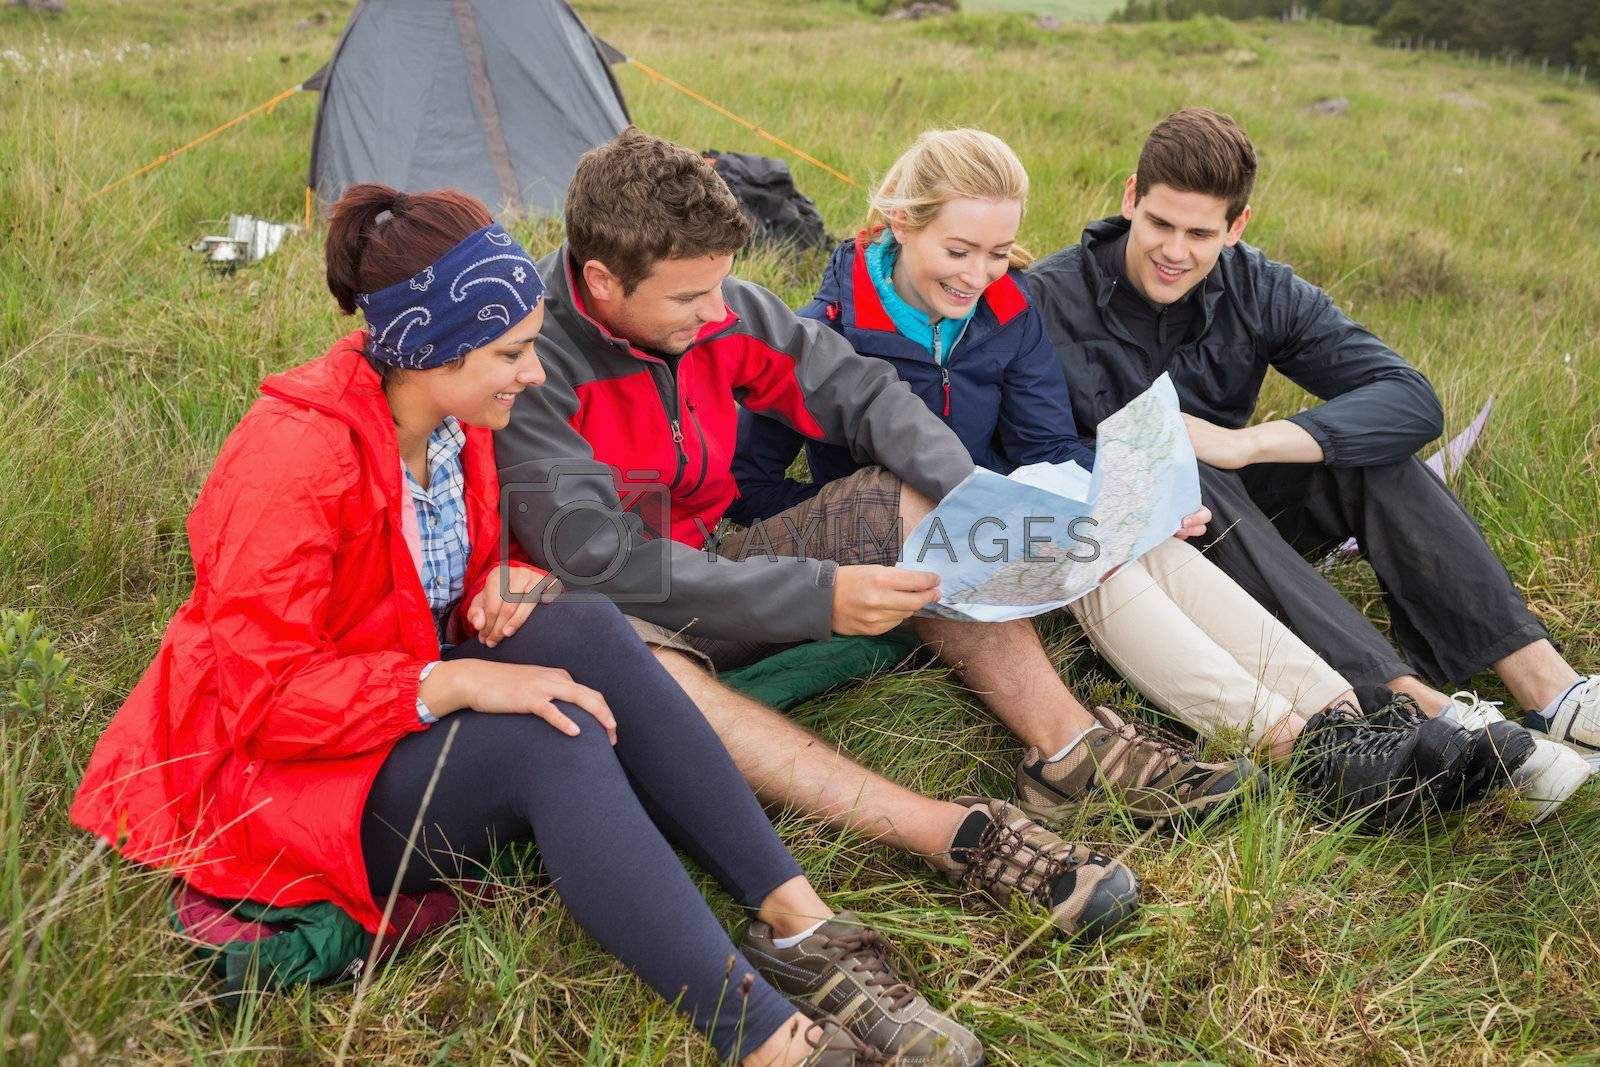 Friends sitting down looking at map on camping trip by Wavebreakmedia